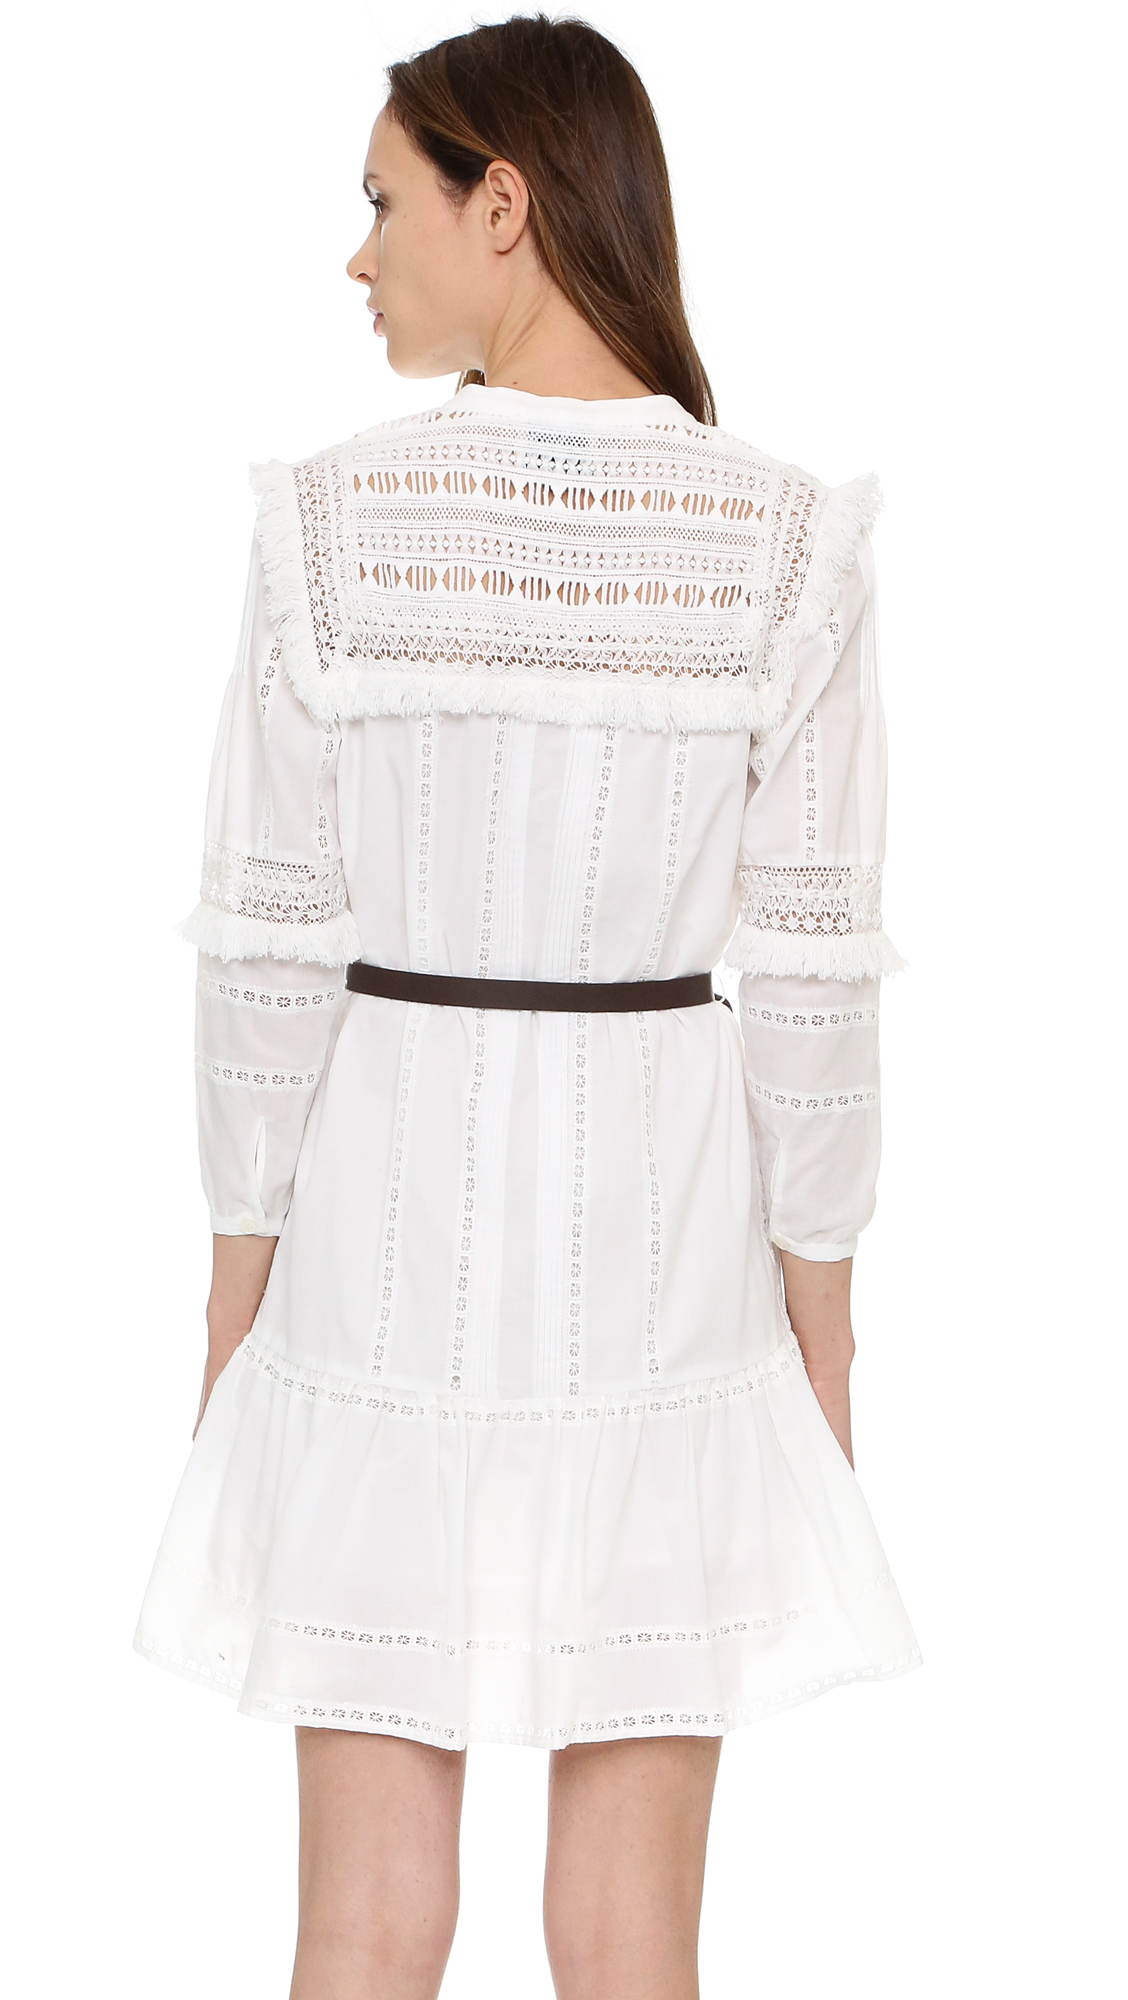 0b506f5c1b83 Lyst - Sea Striped Lace Belted Dress in White